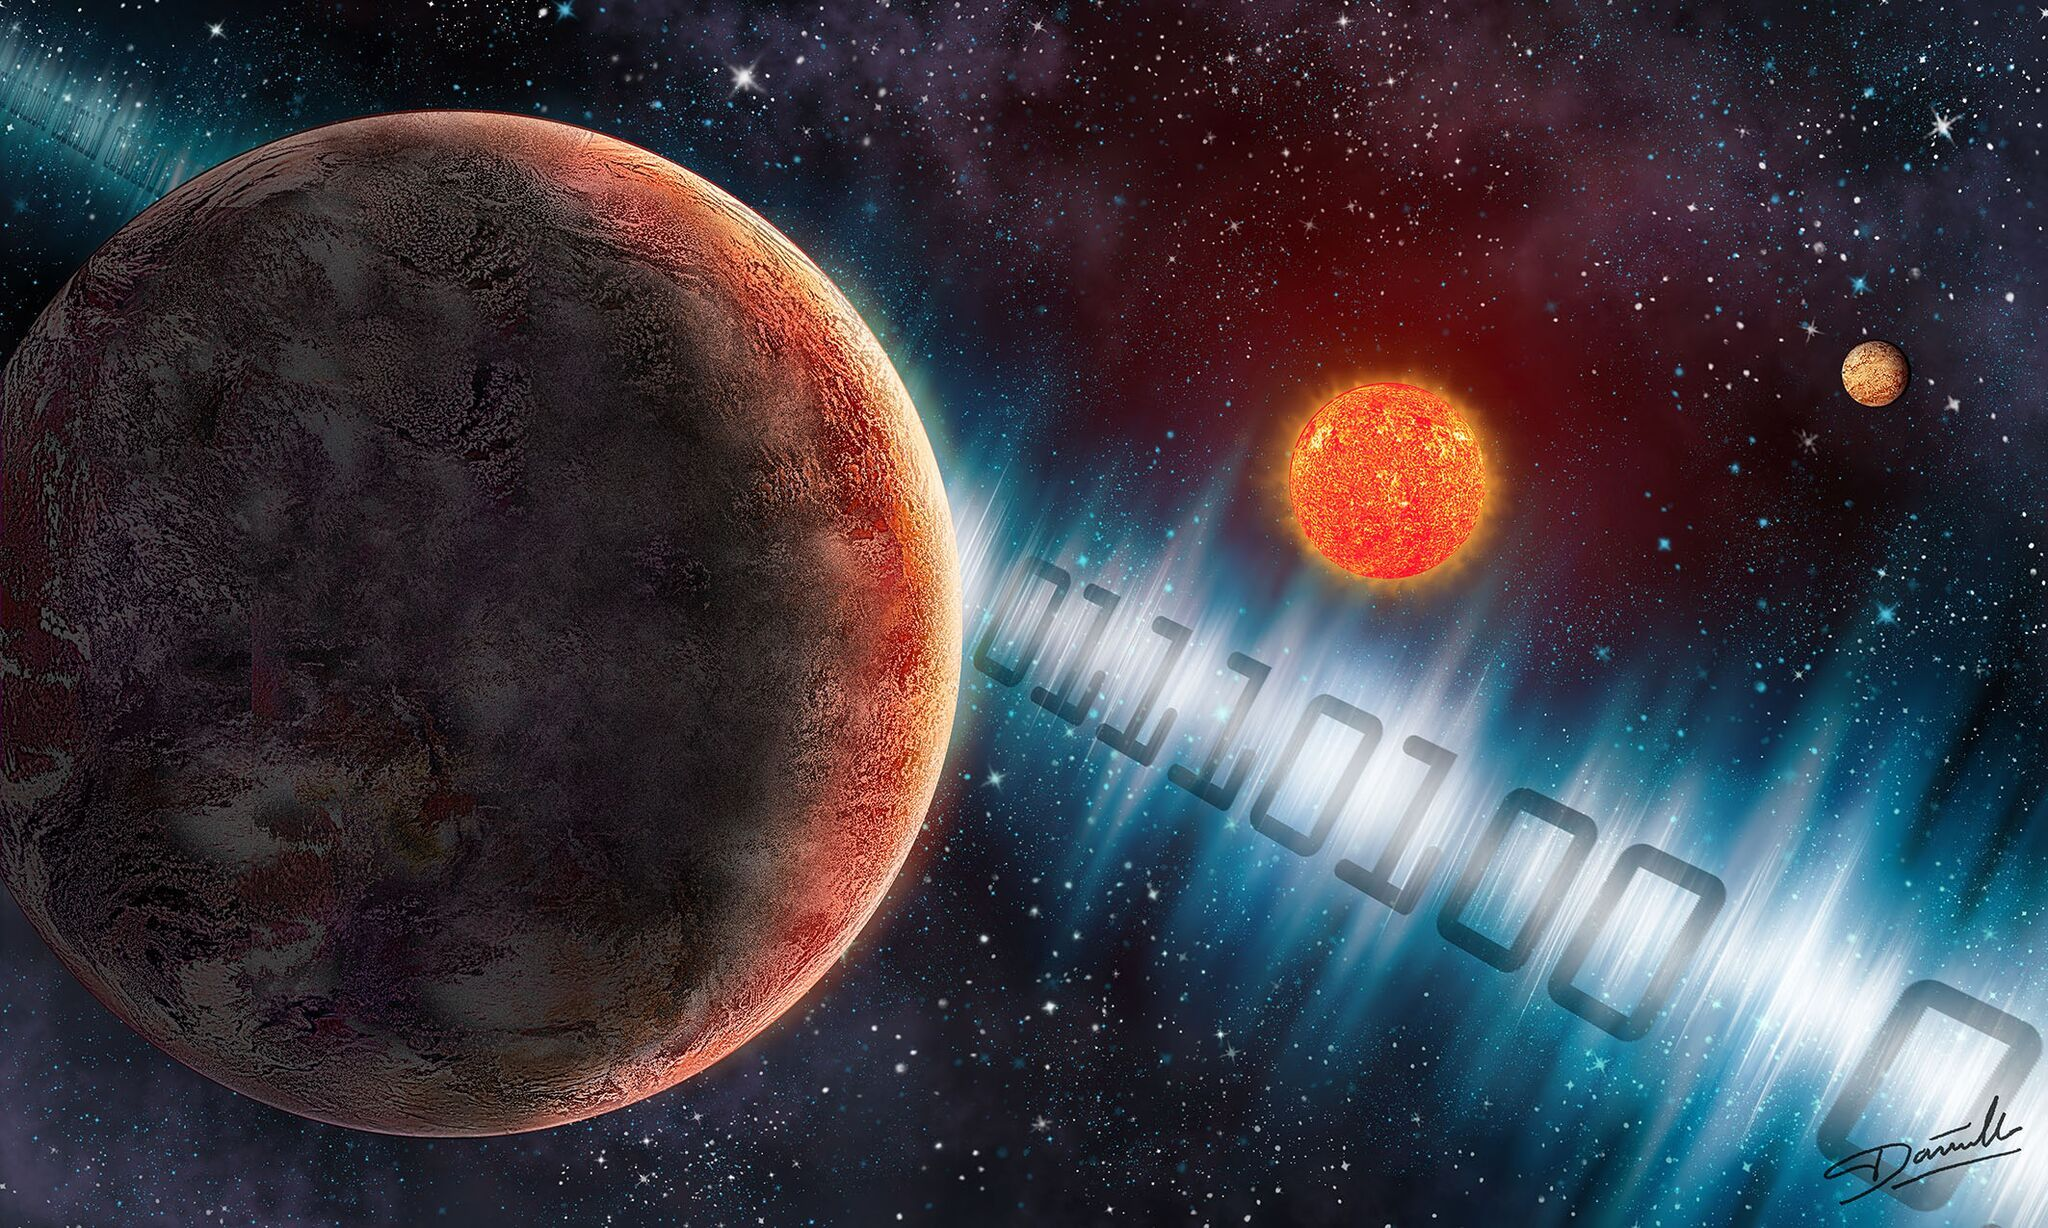 Image result for ALIEN CIVILIZATIONS SENDING MESSAGES TO EARTH WILL DIE OUT BEFORE THE SIGNAL REACHES US, SAY ASTRONOMERS